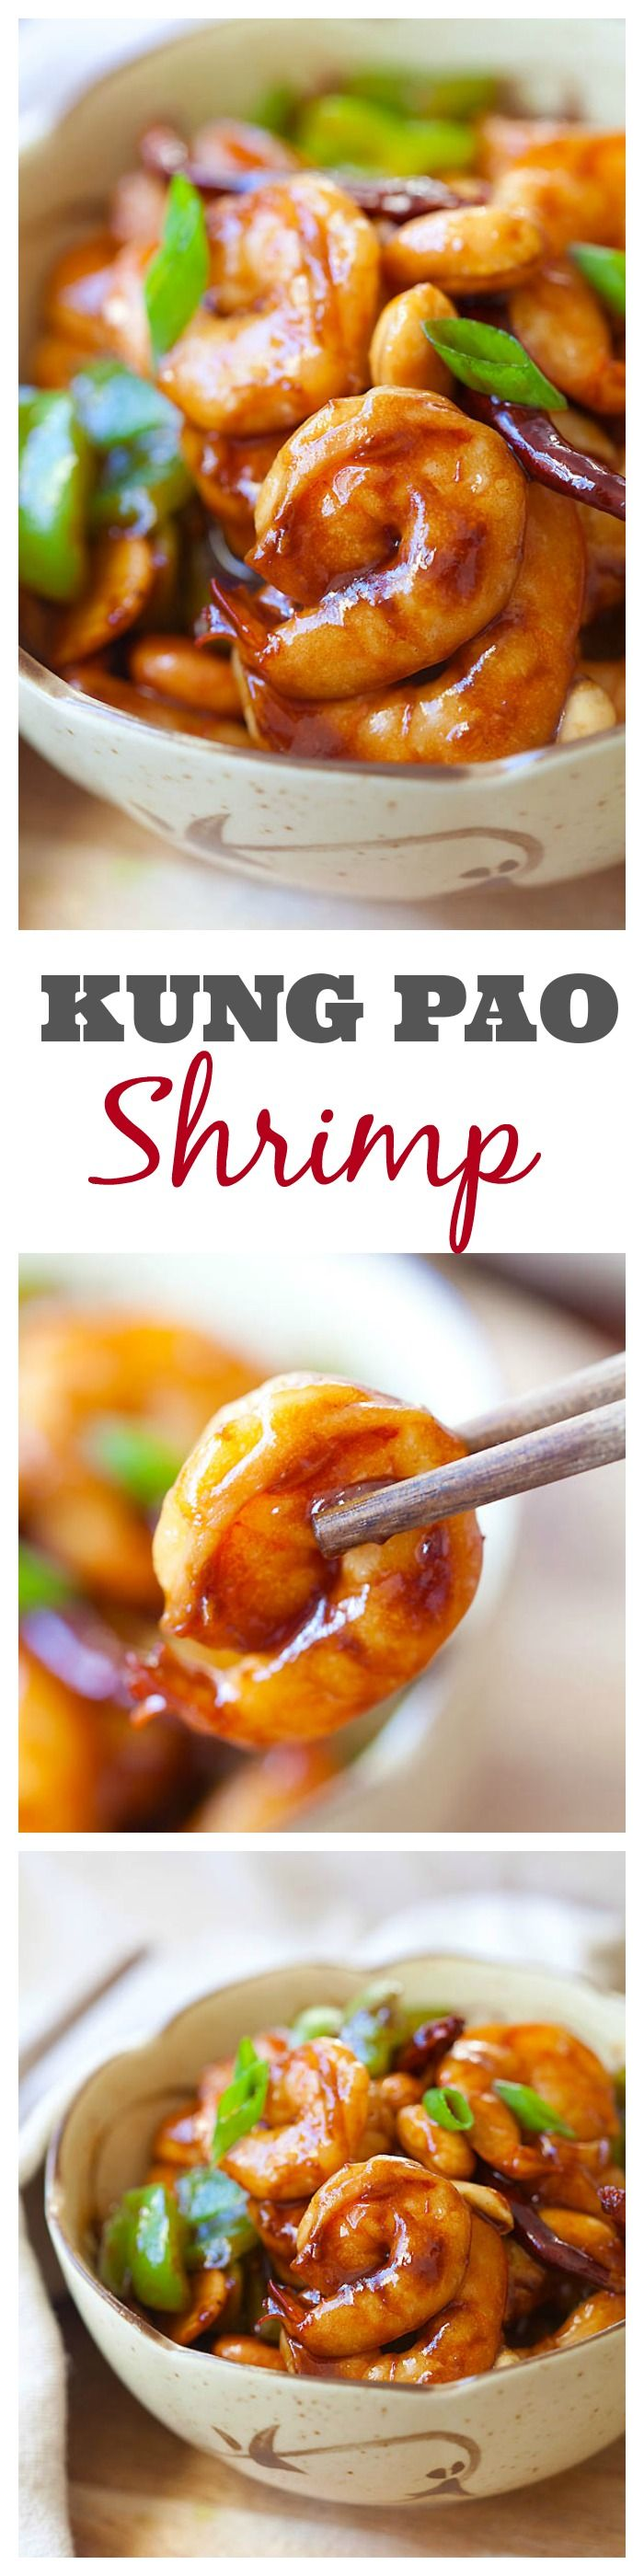 Kung Pao Shrimp recipe that is super easy to make at home, less than ...